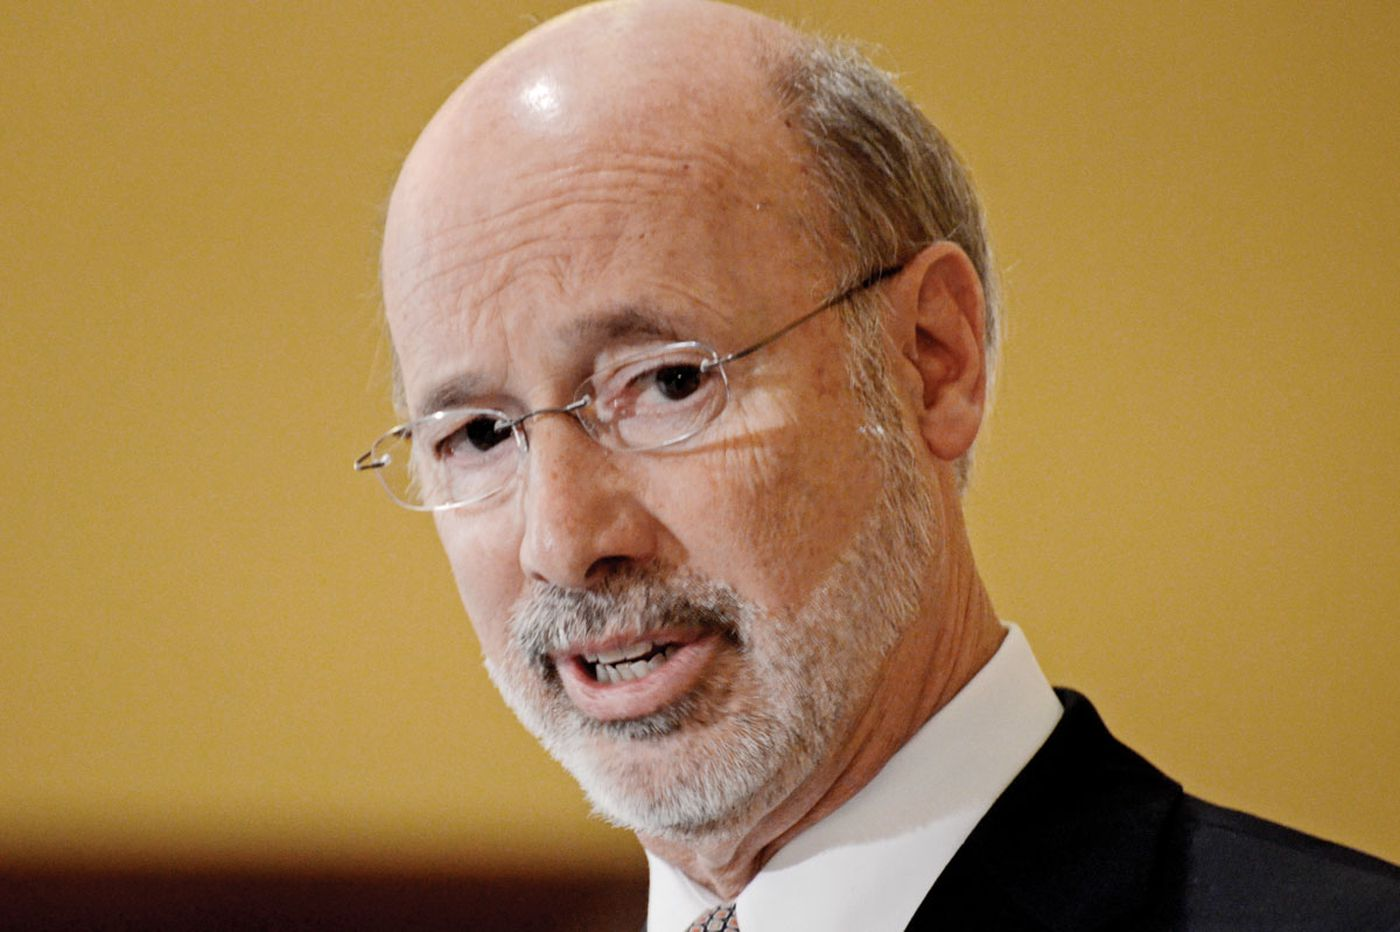 Gov. Wolf proposes bill to protect patients from 'balance billing'